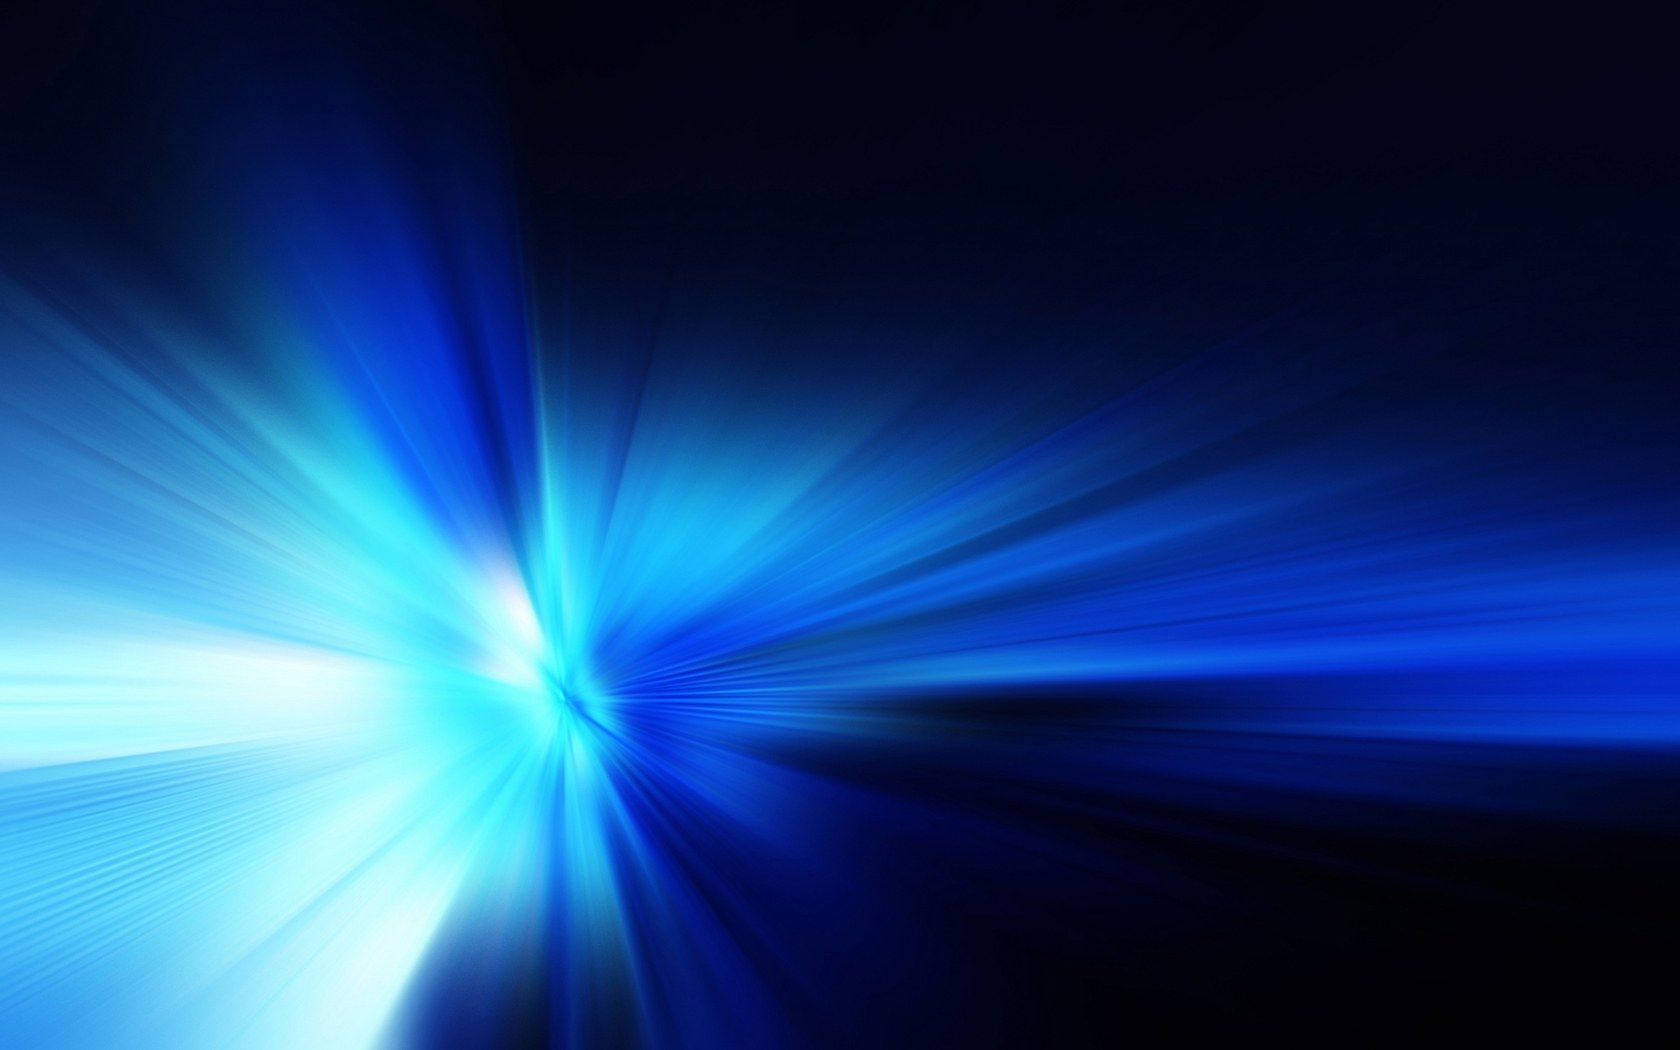 Hd Abstract Blue Background: HD Abstract Blue Background